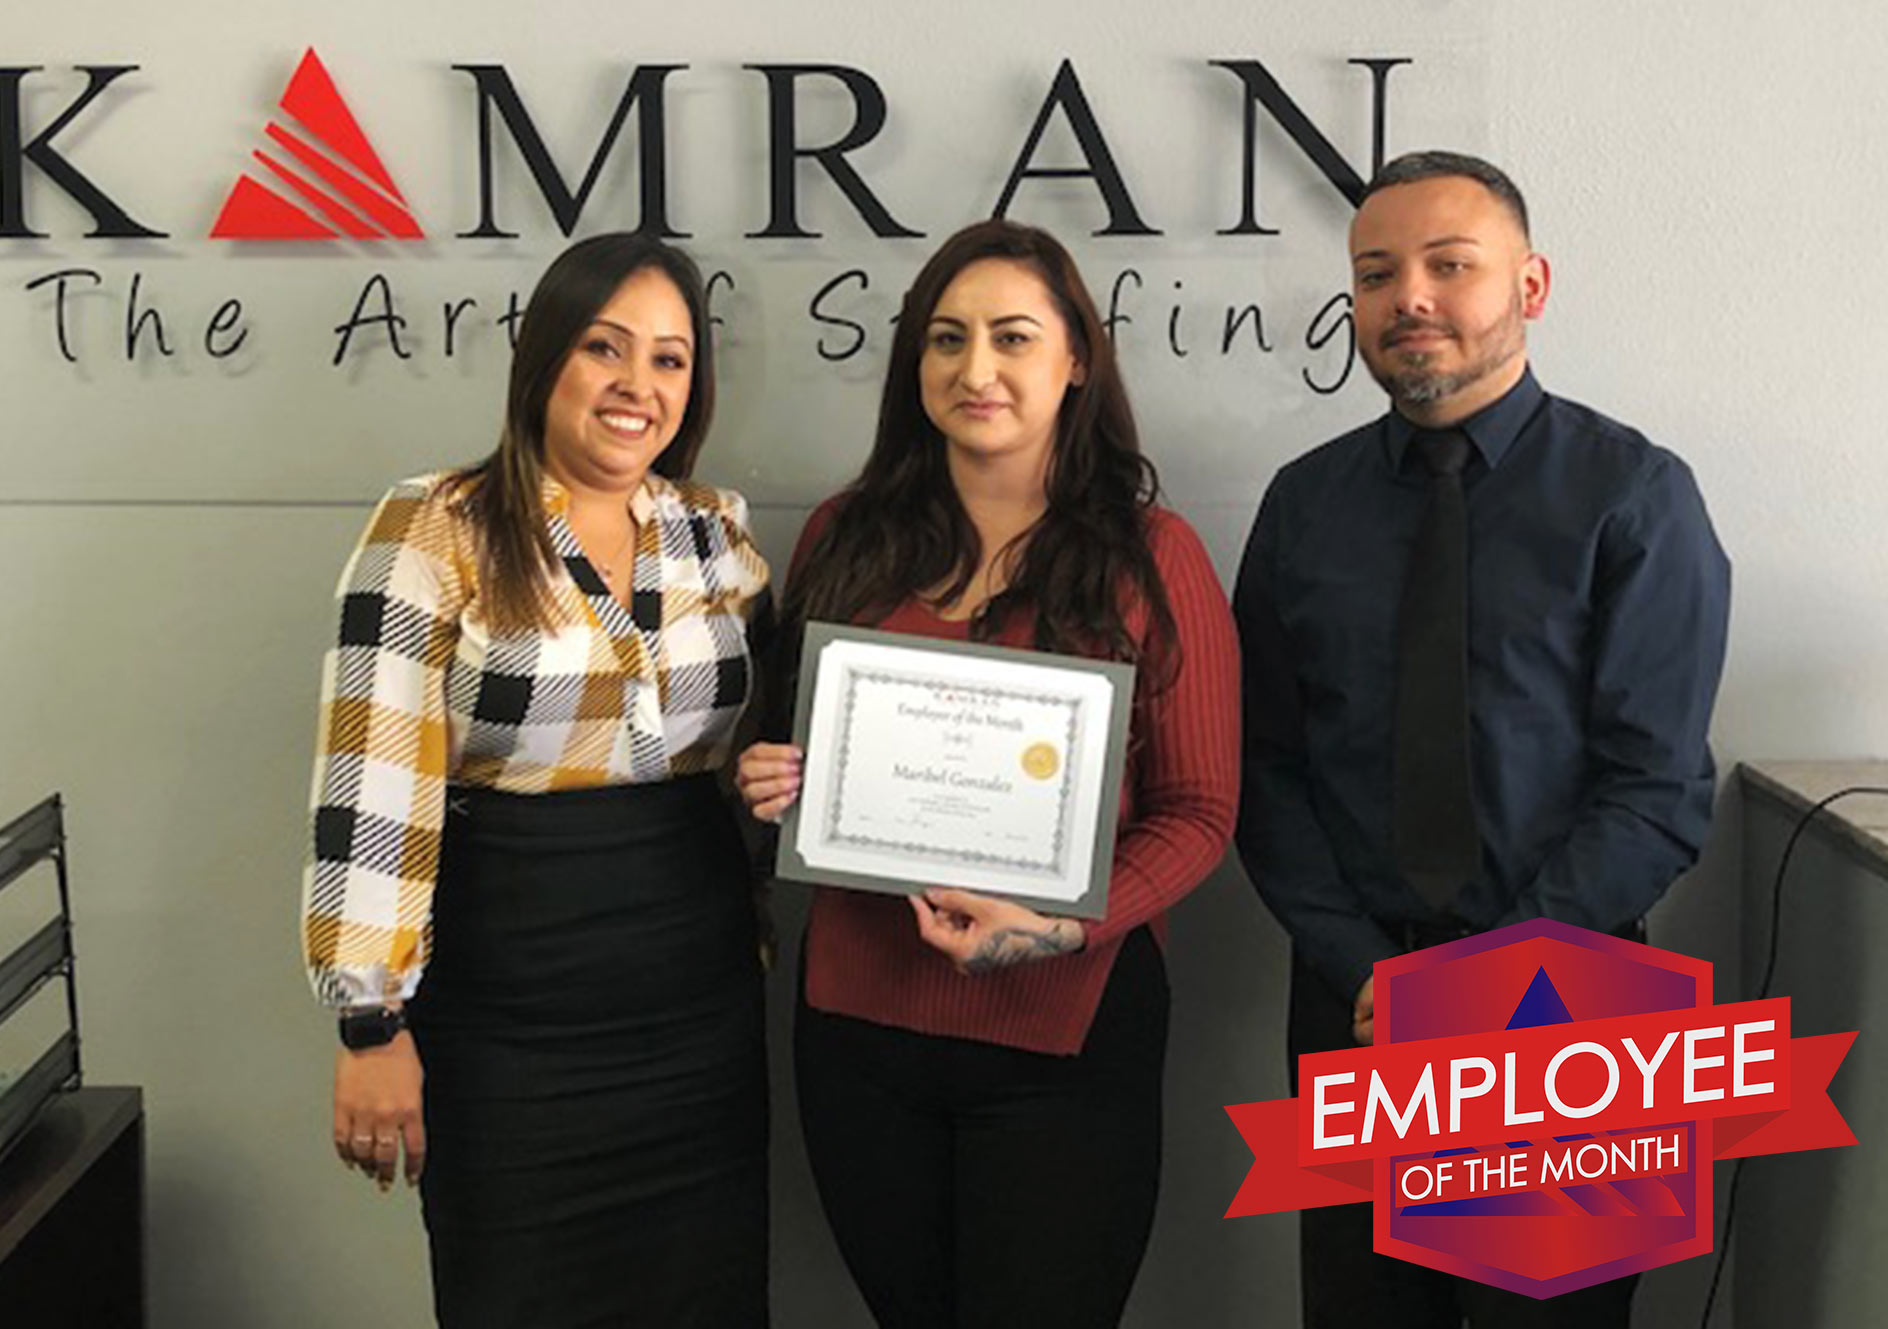 Kamran Staffing Employee of the Month - May 2019 - Maribel Gonzalez